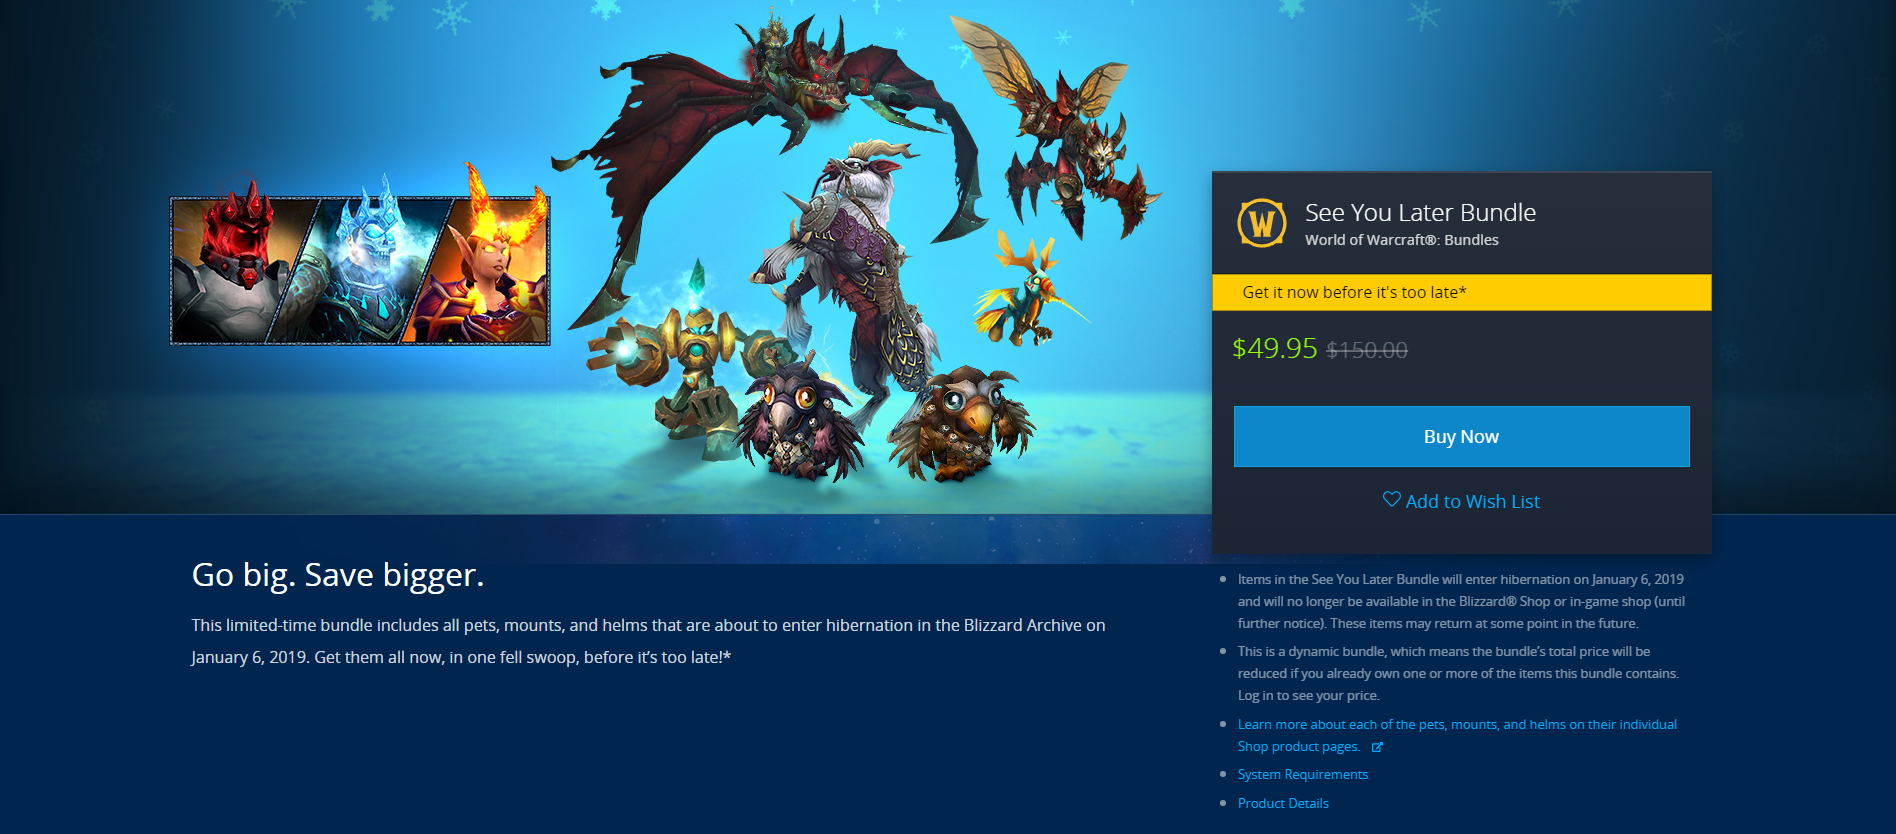 Blizzard To Retire Select Shop Mounts, Pets, and Helms - See You